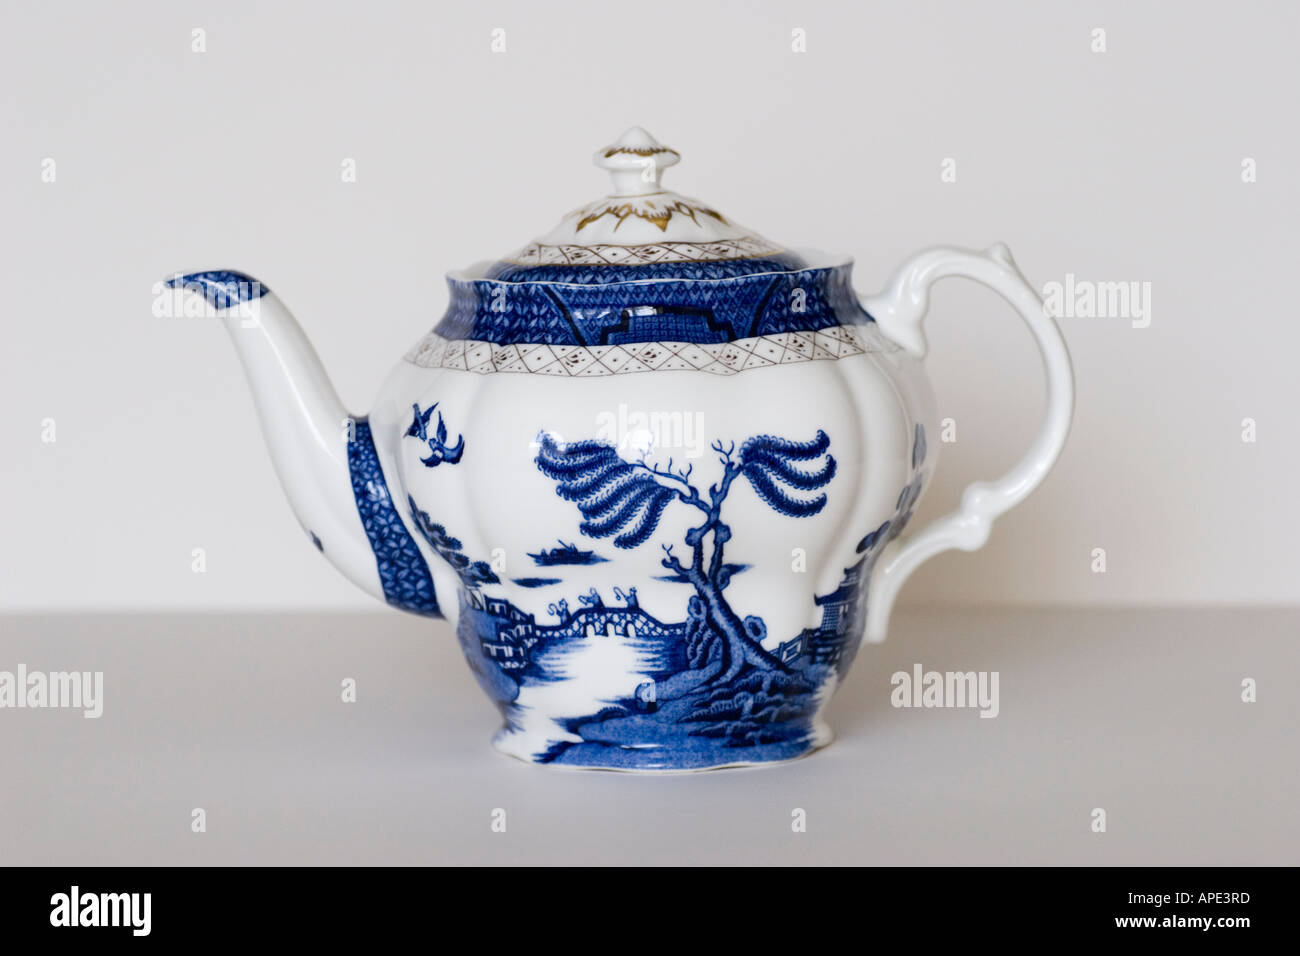 Booths China tea pot made in England GB UK - Stock Image